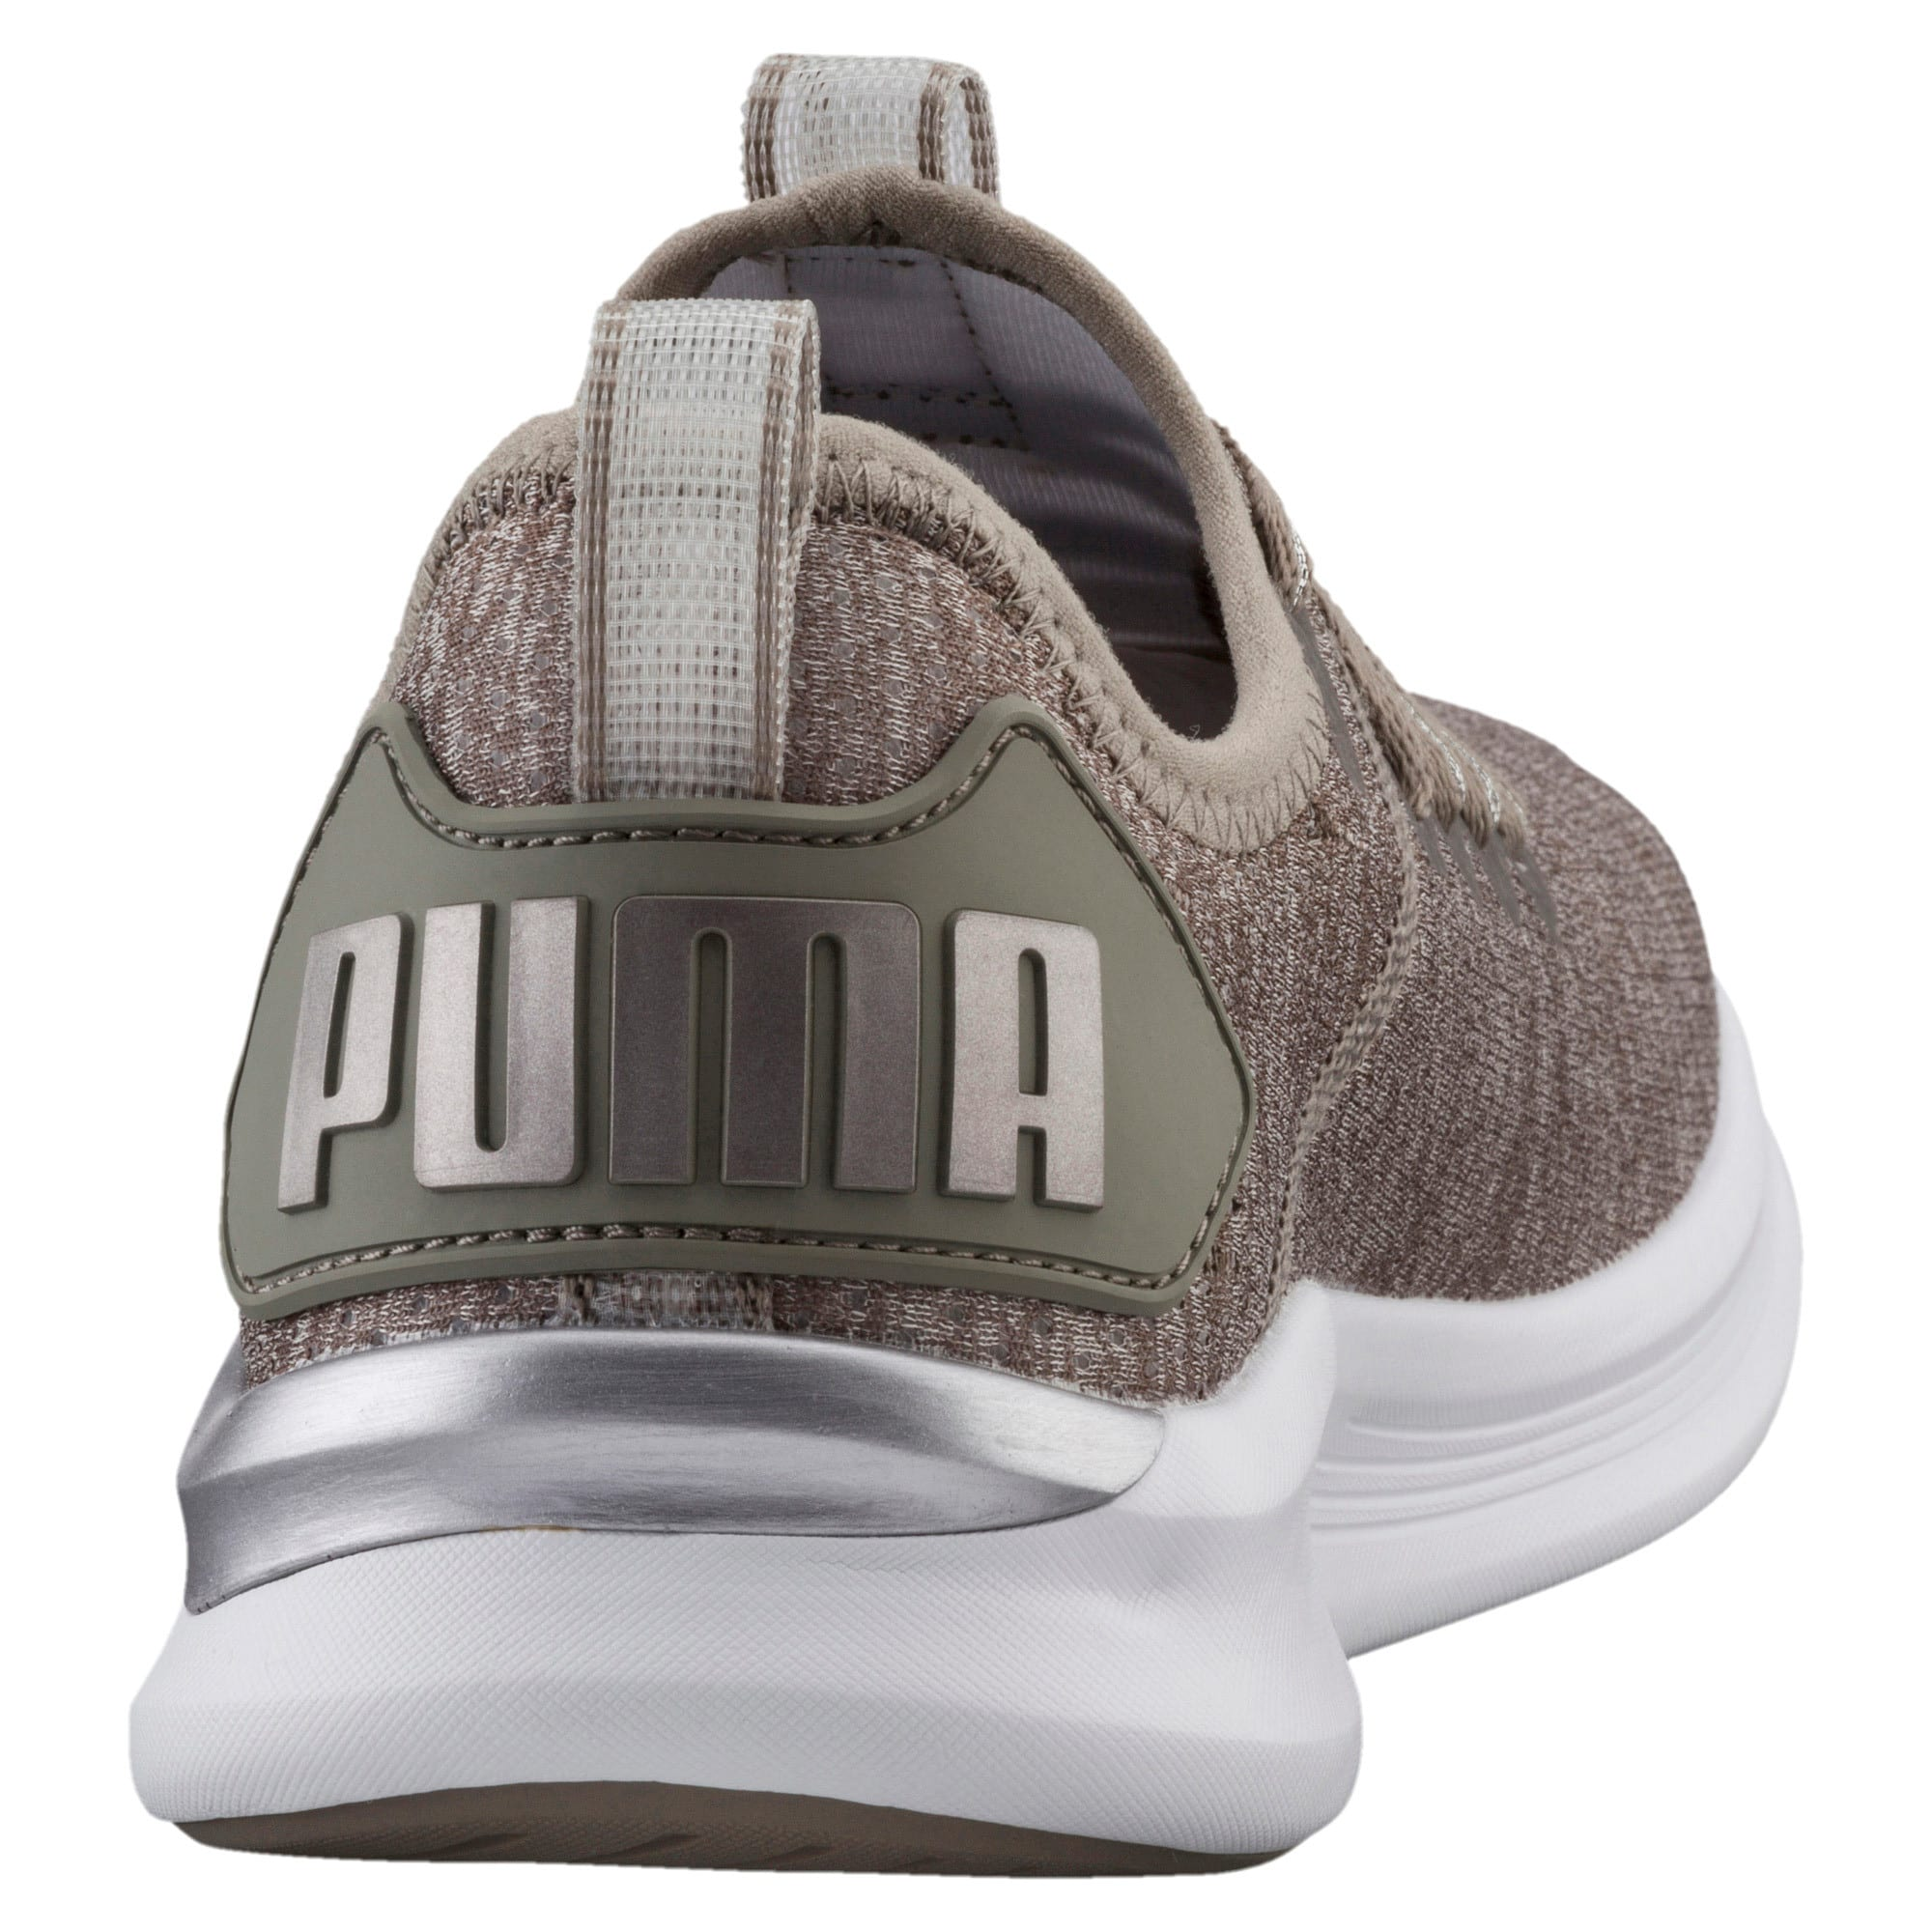 Thumbnail 3 of Flash IGNITE evoKNIT En Pointe Women's Trainers, Rock Ridge-Metallic Beige, medium-IND